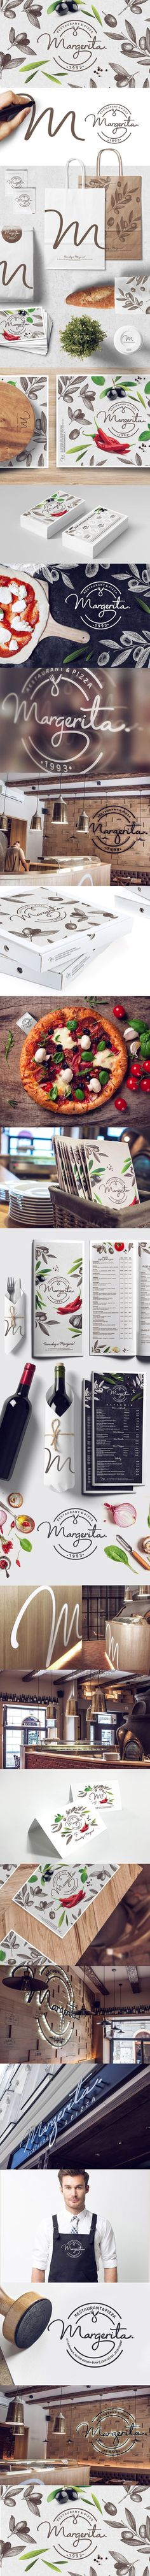 MARGERITA pizza&restaurant on Behance